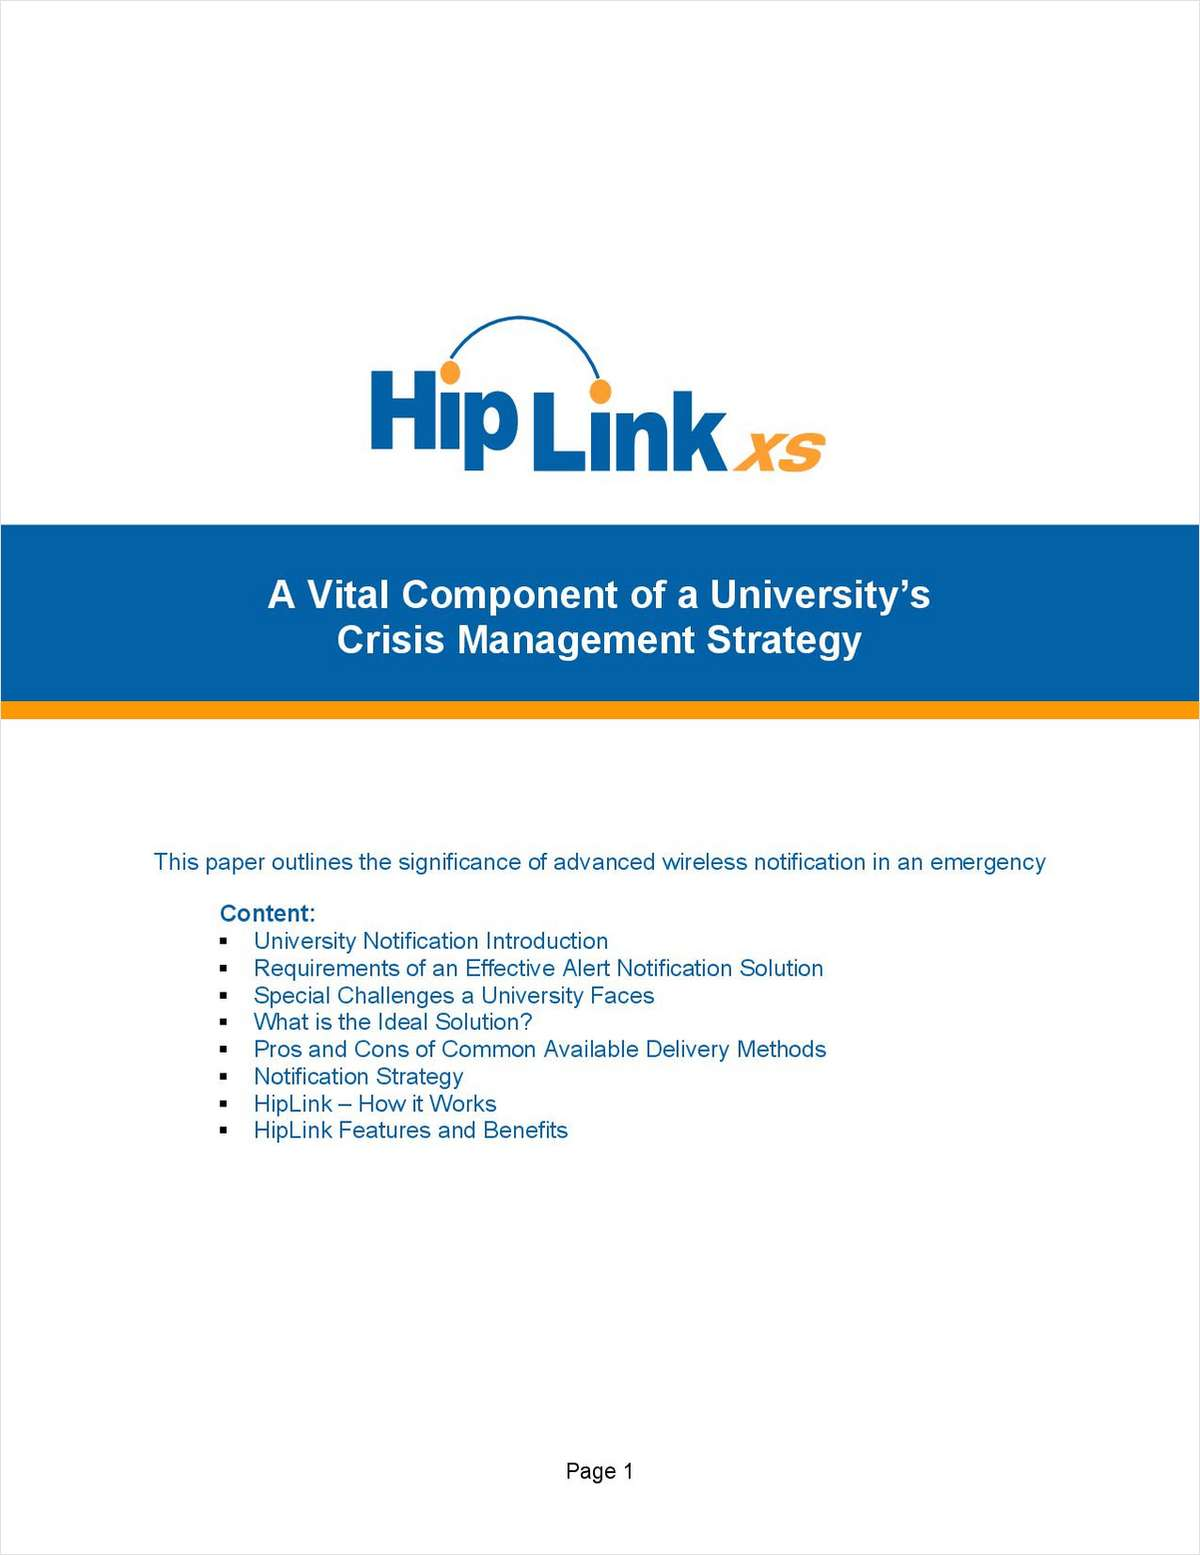 HipLinkXS® - A Vital Component of a University's Crisis Management Strategy